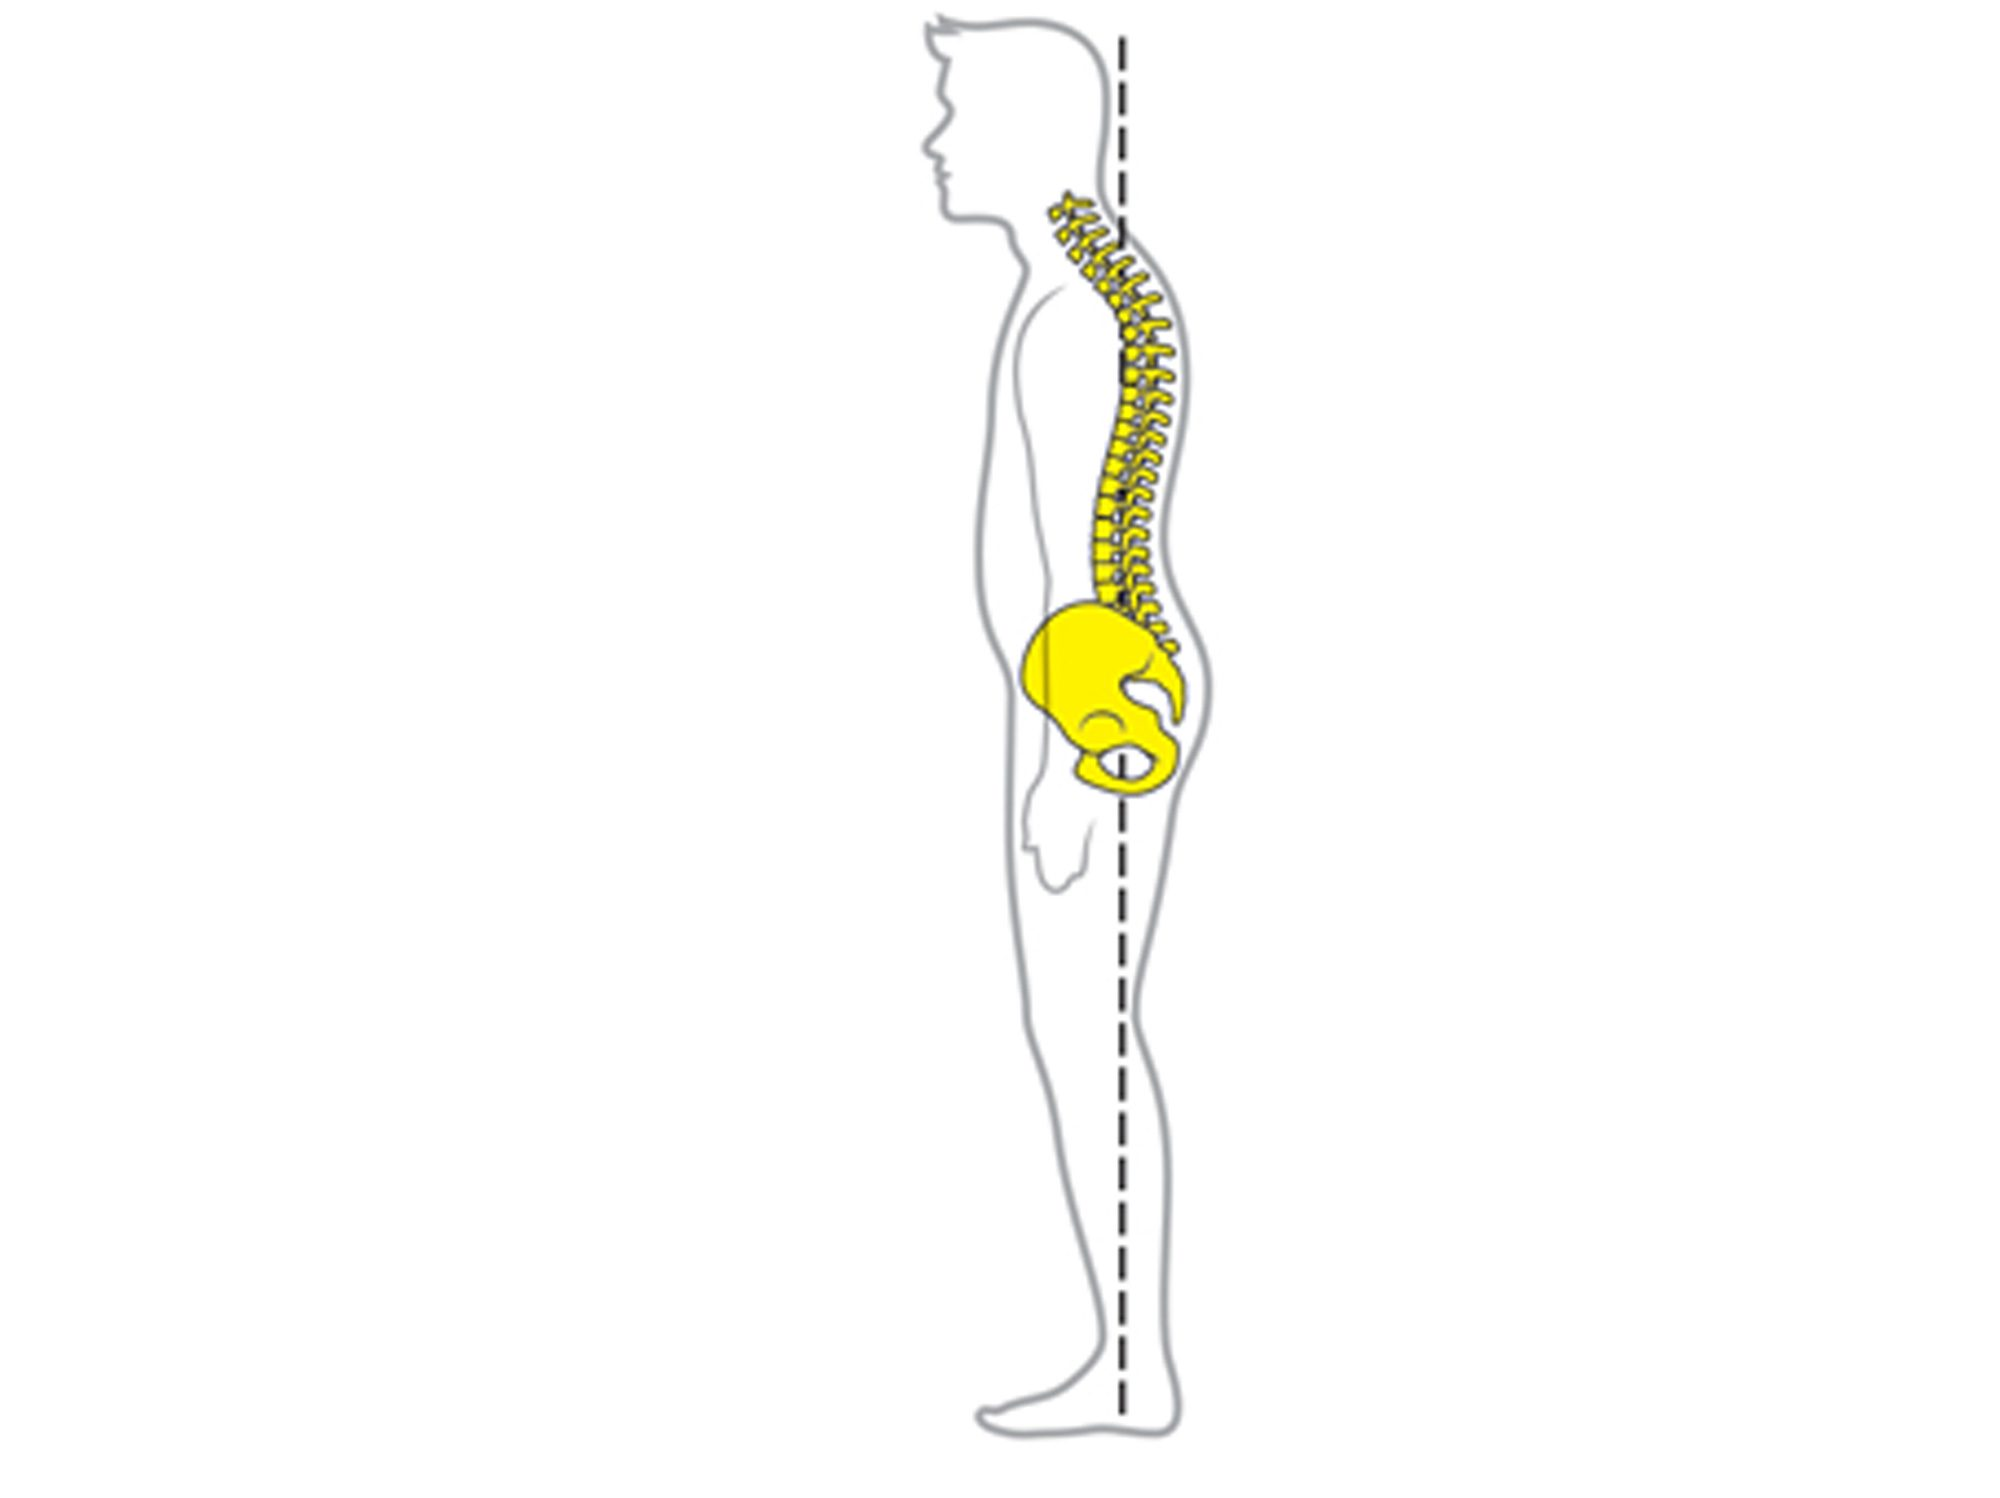 Improving your posture: The Giraffe